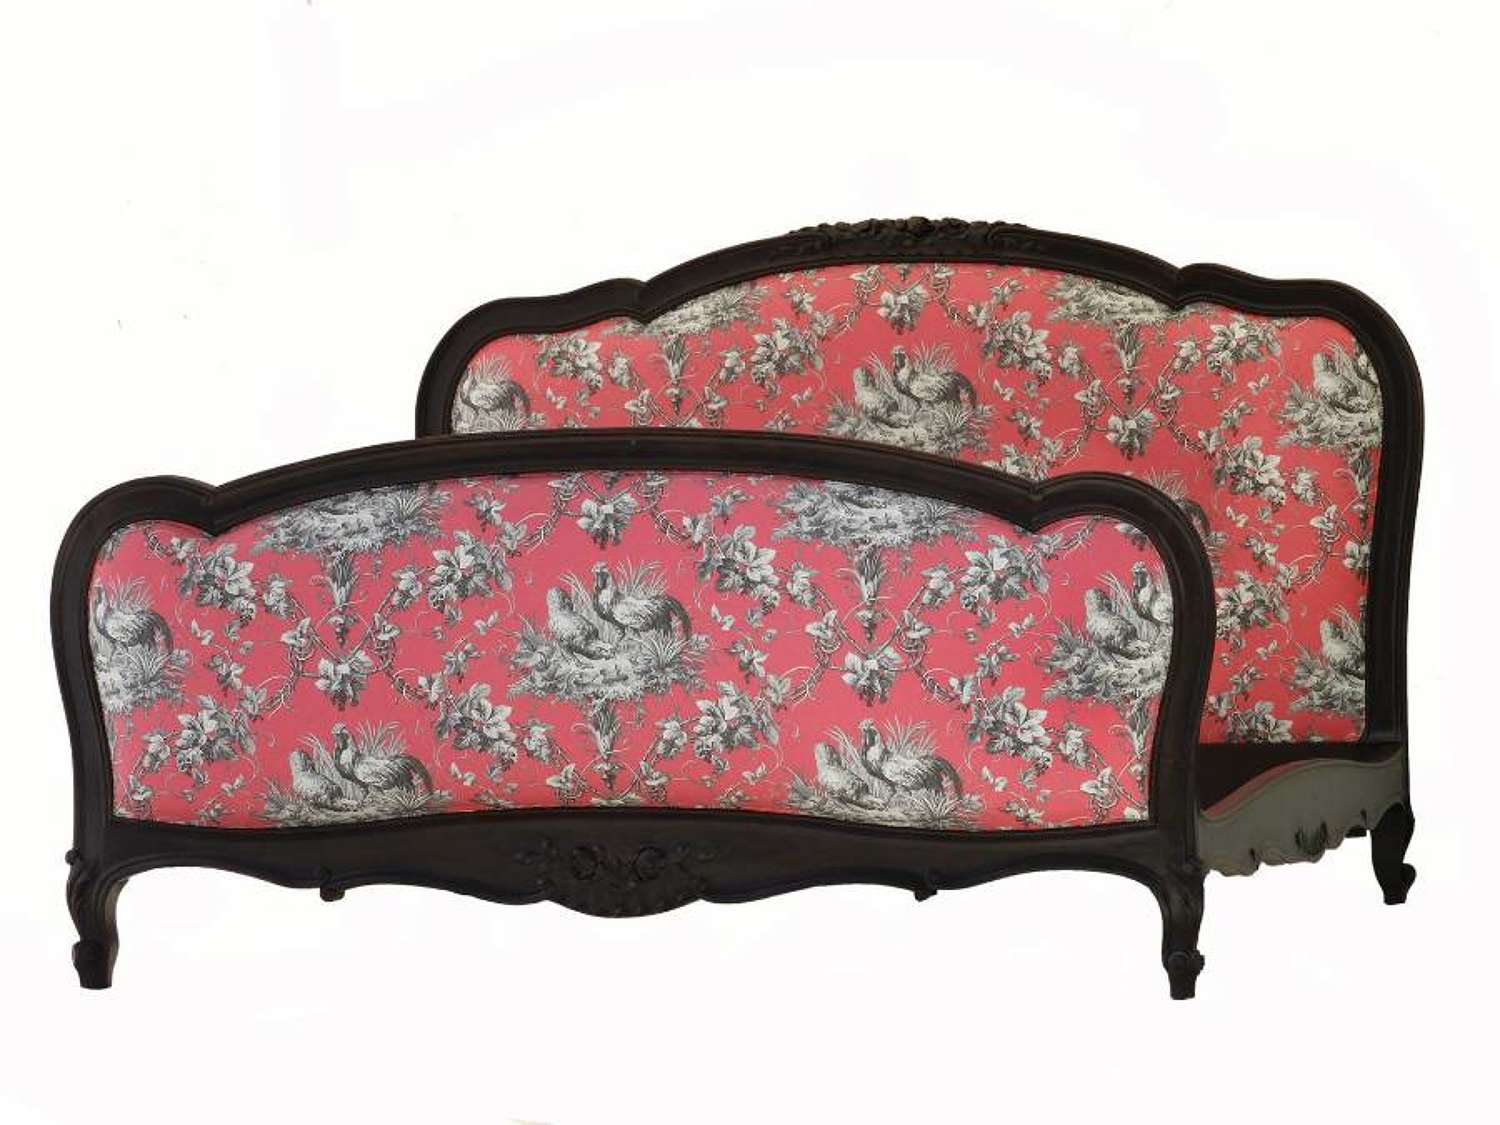 Antique French Bed Upholstered Toile de Jouy US Queen UK King-Size c1890